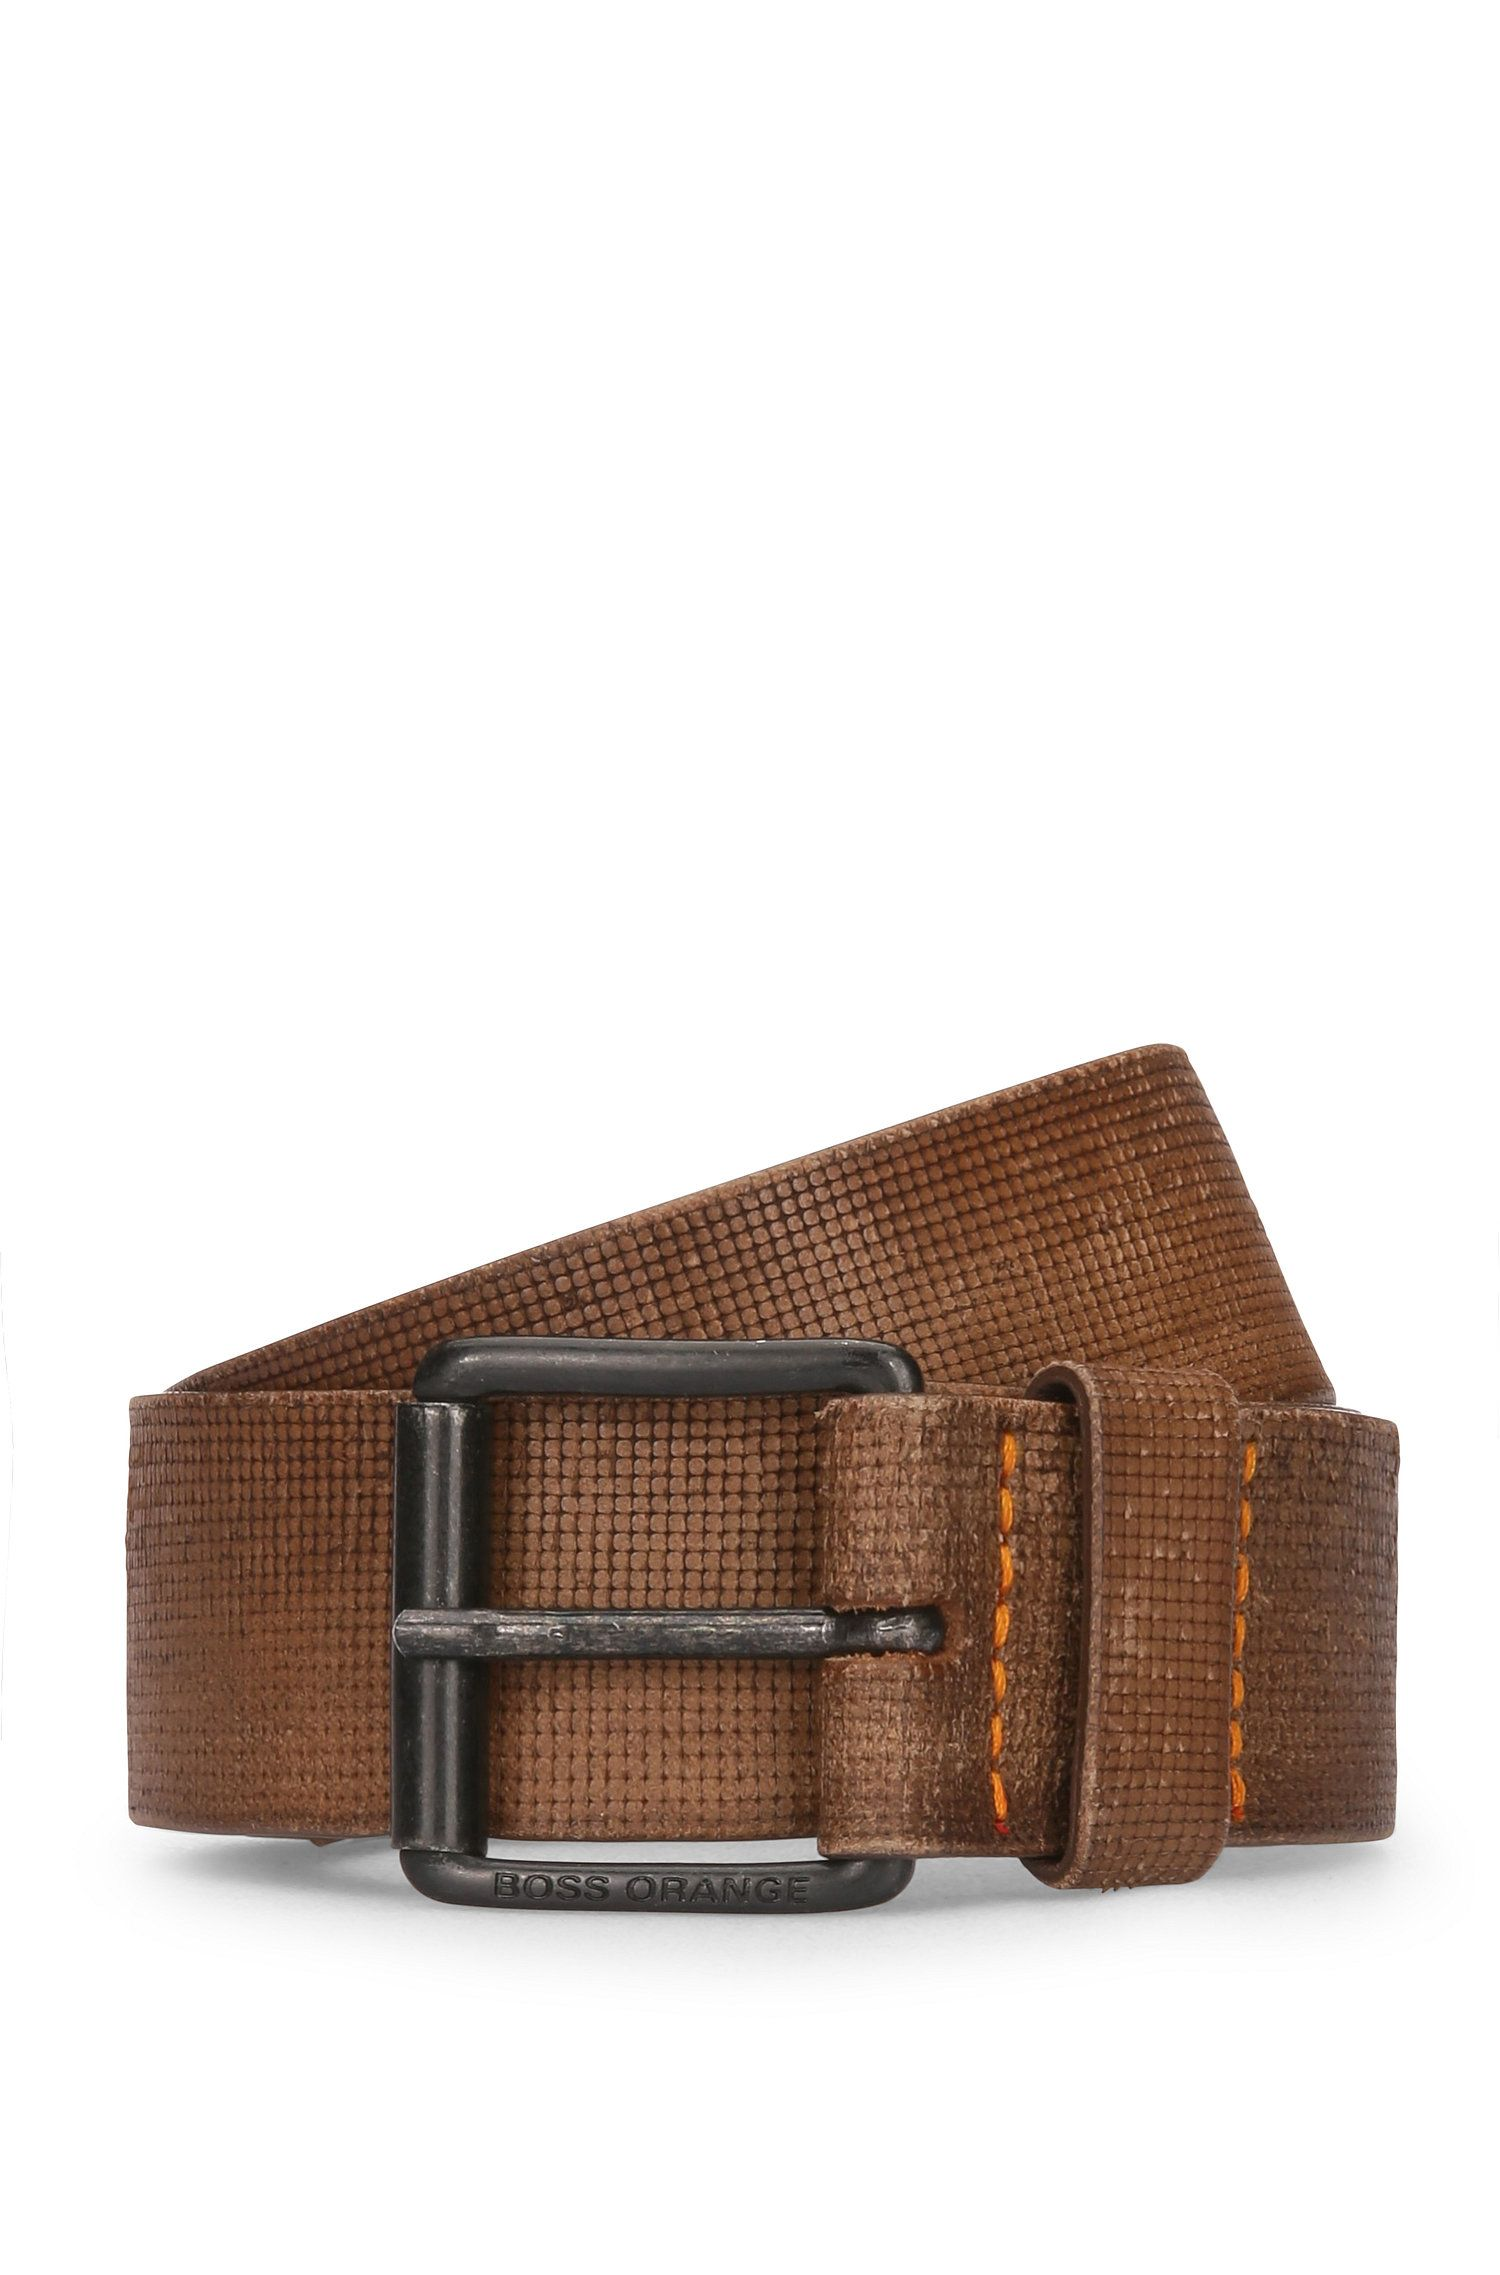 Leather belt with embossed texture